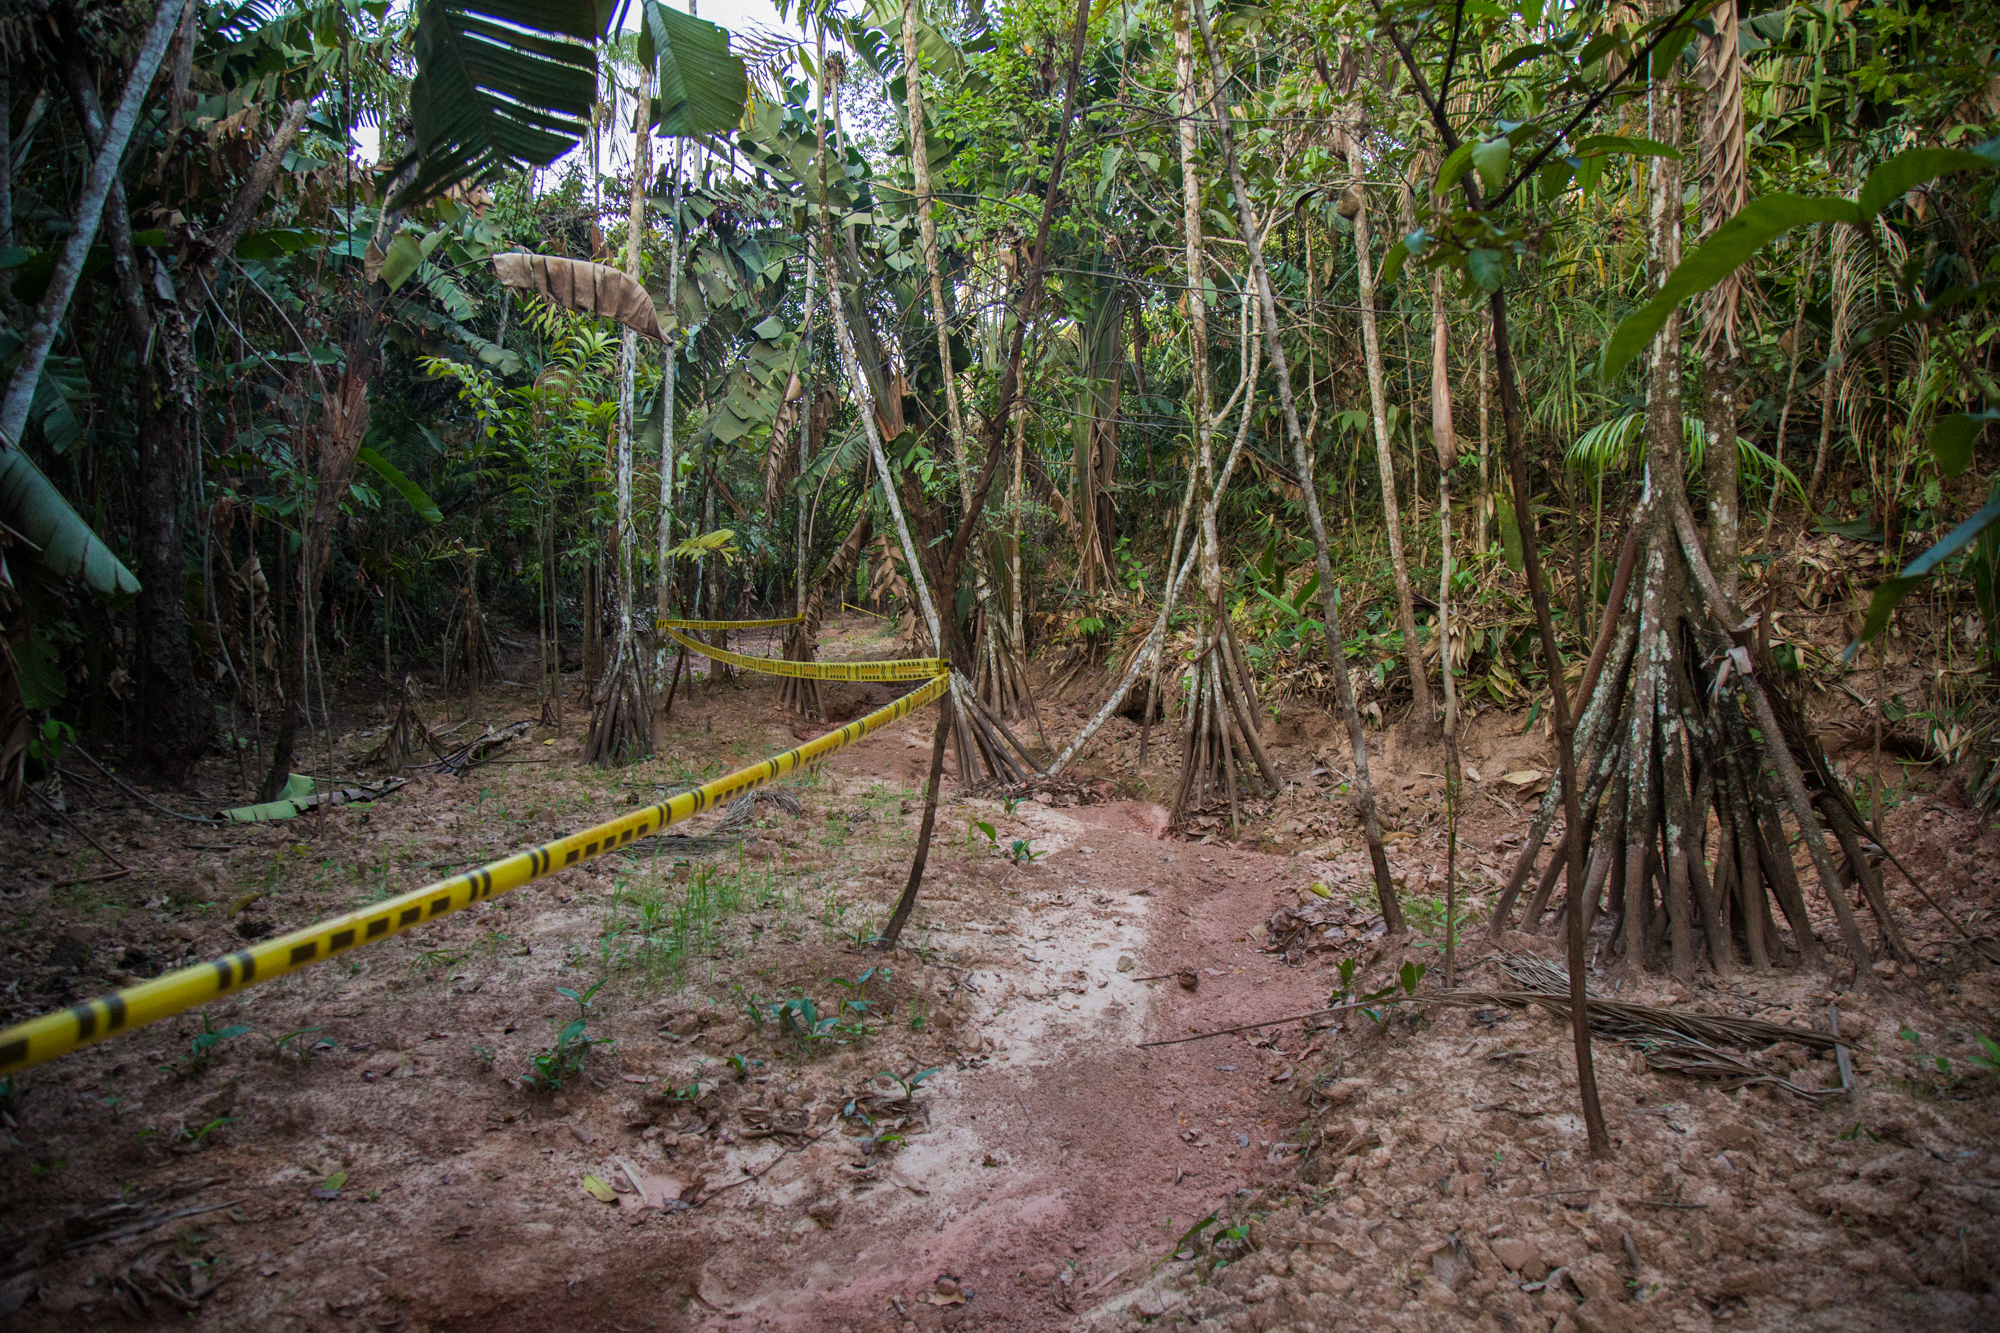 A creek bed caked in oil contamninated mud where an oil spill occured months earlier. Evidence of the spill and subsequent clean up shown by police tape that runs through the dying trees. Rubiales Meta, Colombia. April 9, 2017